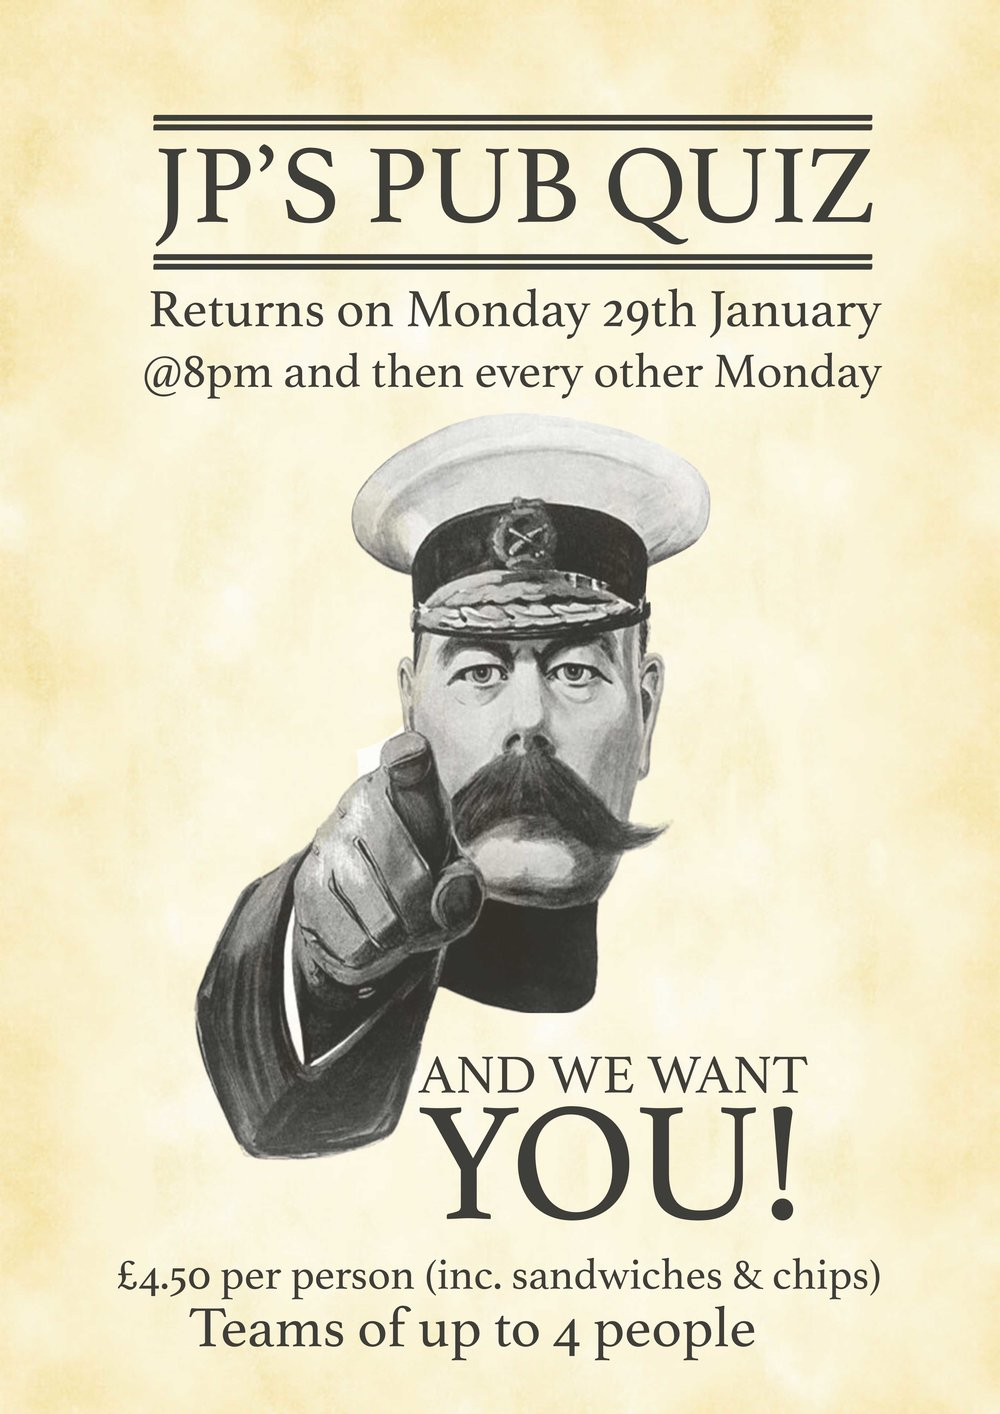 The Return of JP's Pub Quiz at the Griffin Inn, Swithland. Starts Monday 29th January, then every two weeks. Starts 8pm. £4.50 per person. Teams of up to 4 people. Cash Prize for the winning team.